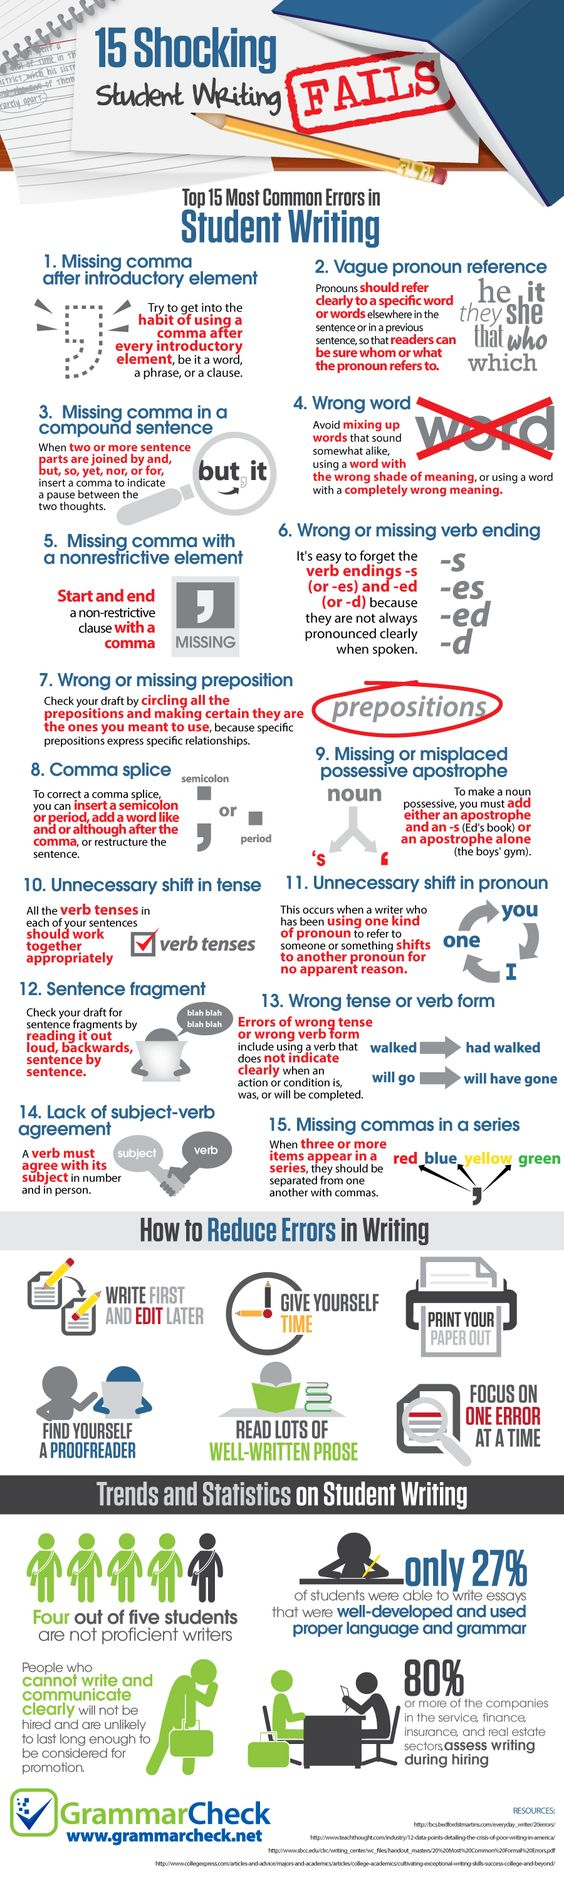 shocking student writing fails infographic about writing learning english middot 15 shocking student writing fails infographic